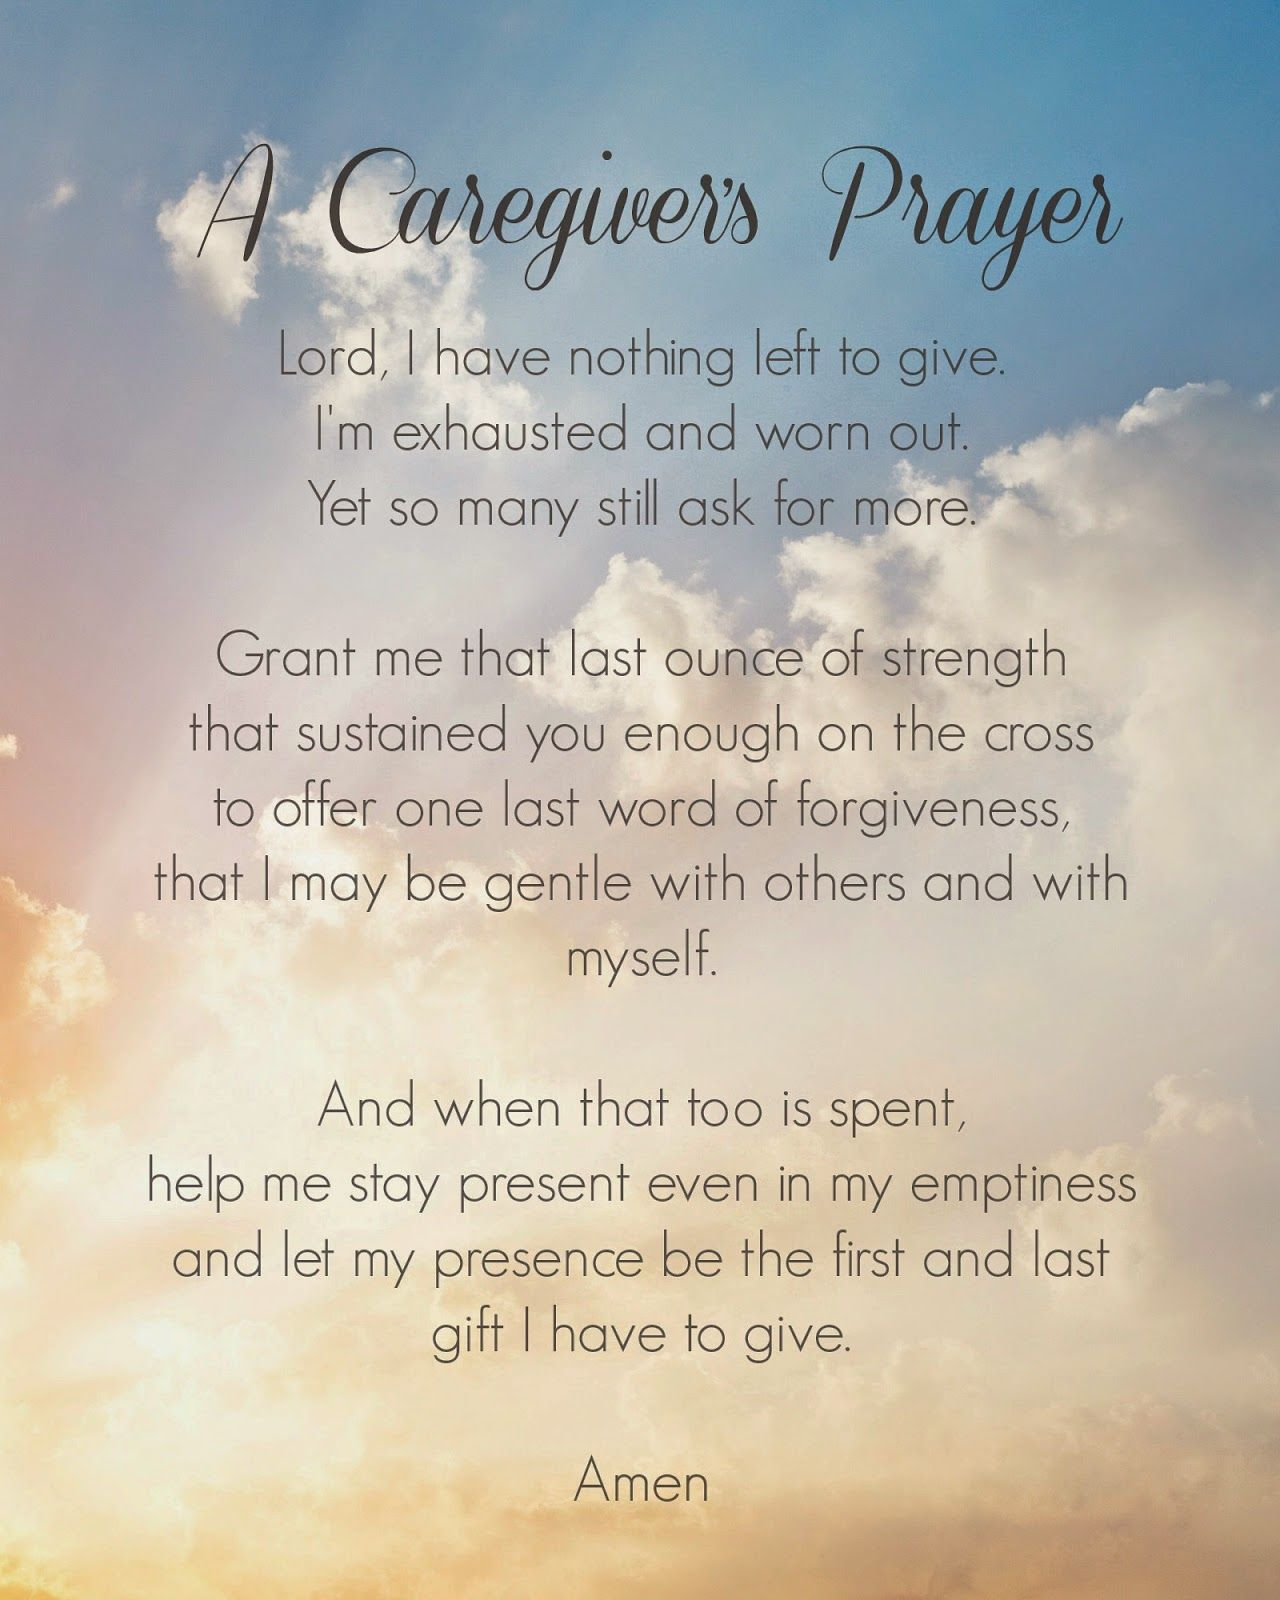 Inspirational Prayer Quotes: A Caregiver's Prayer